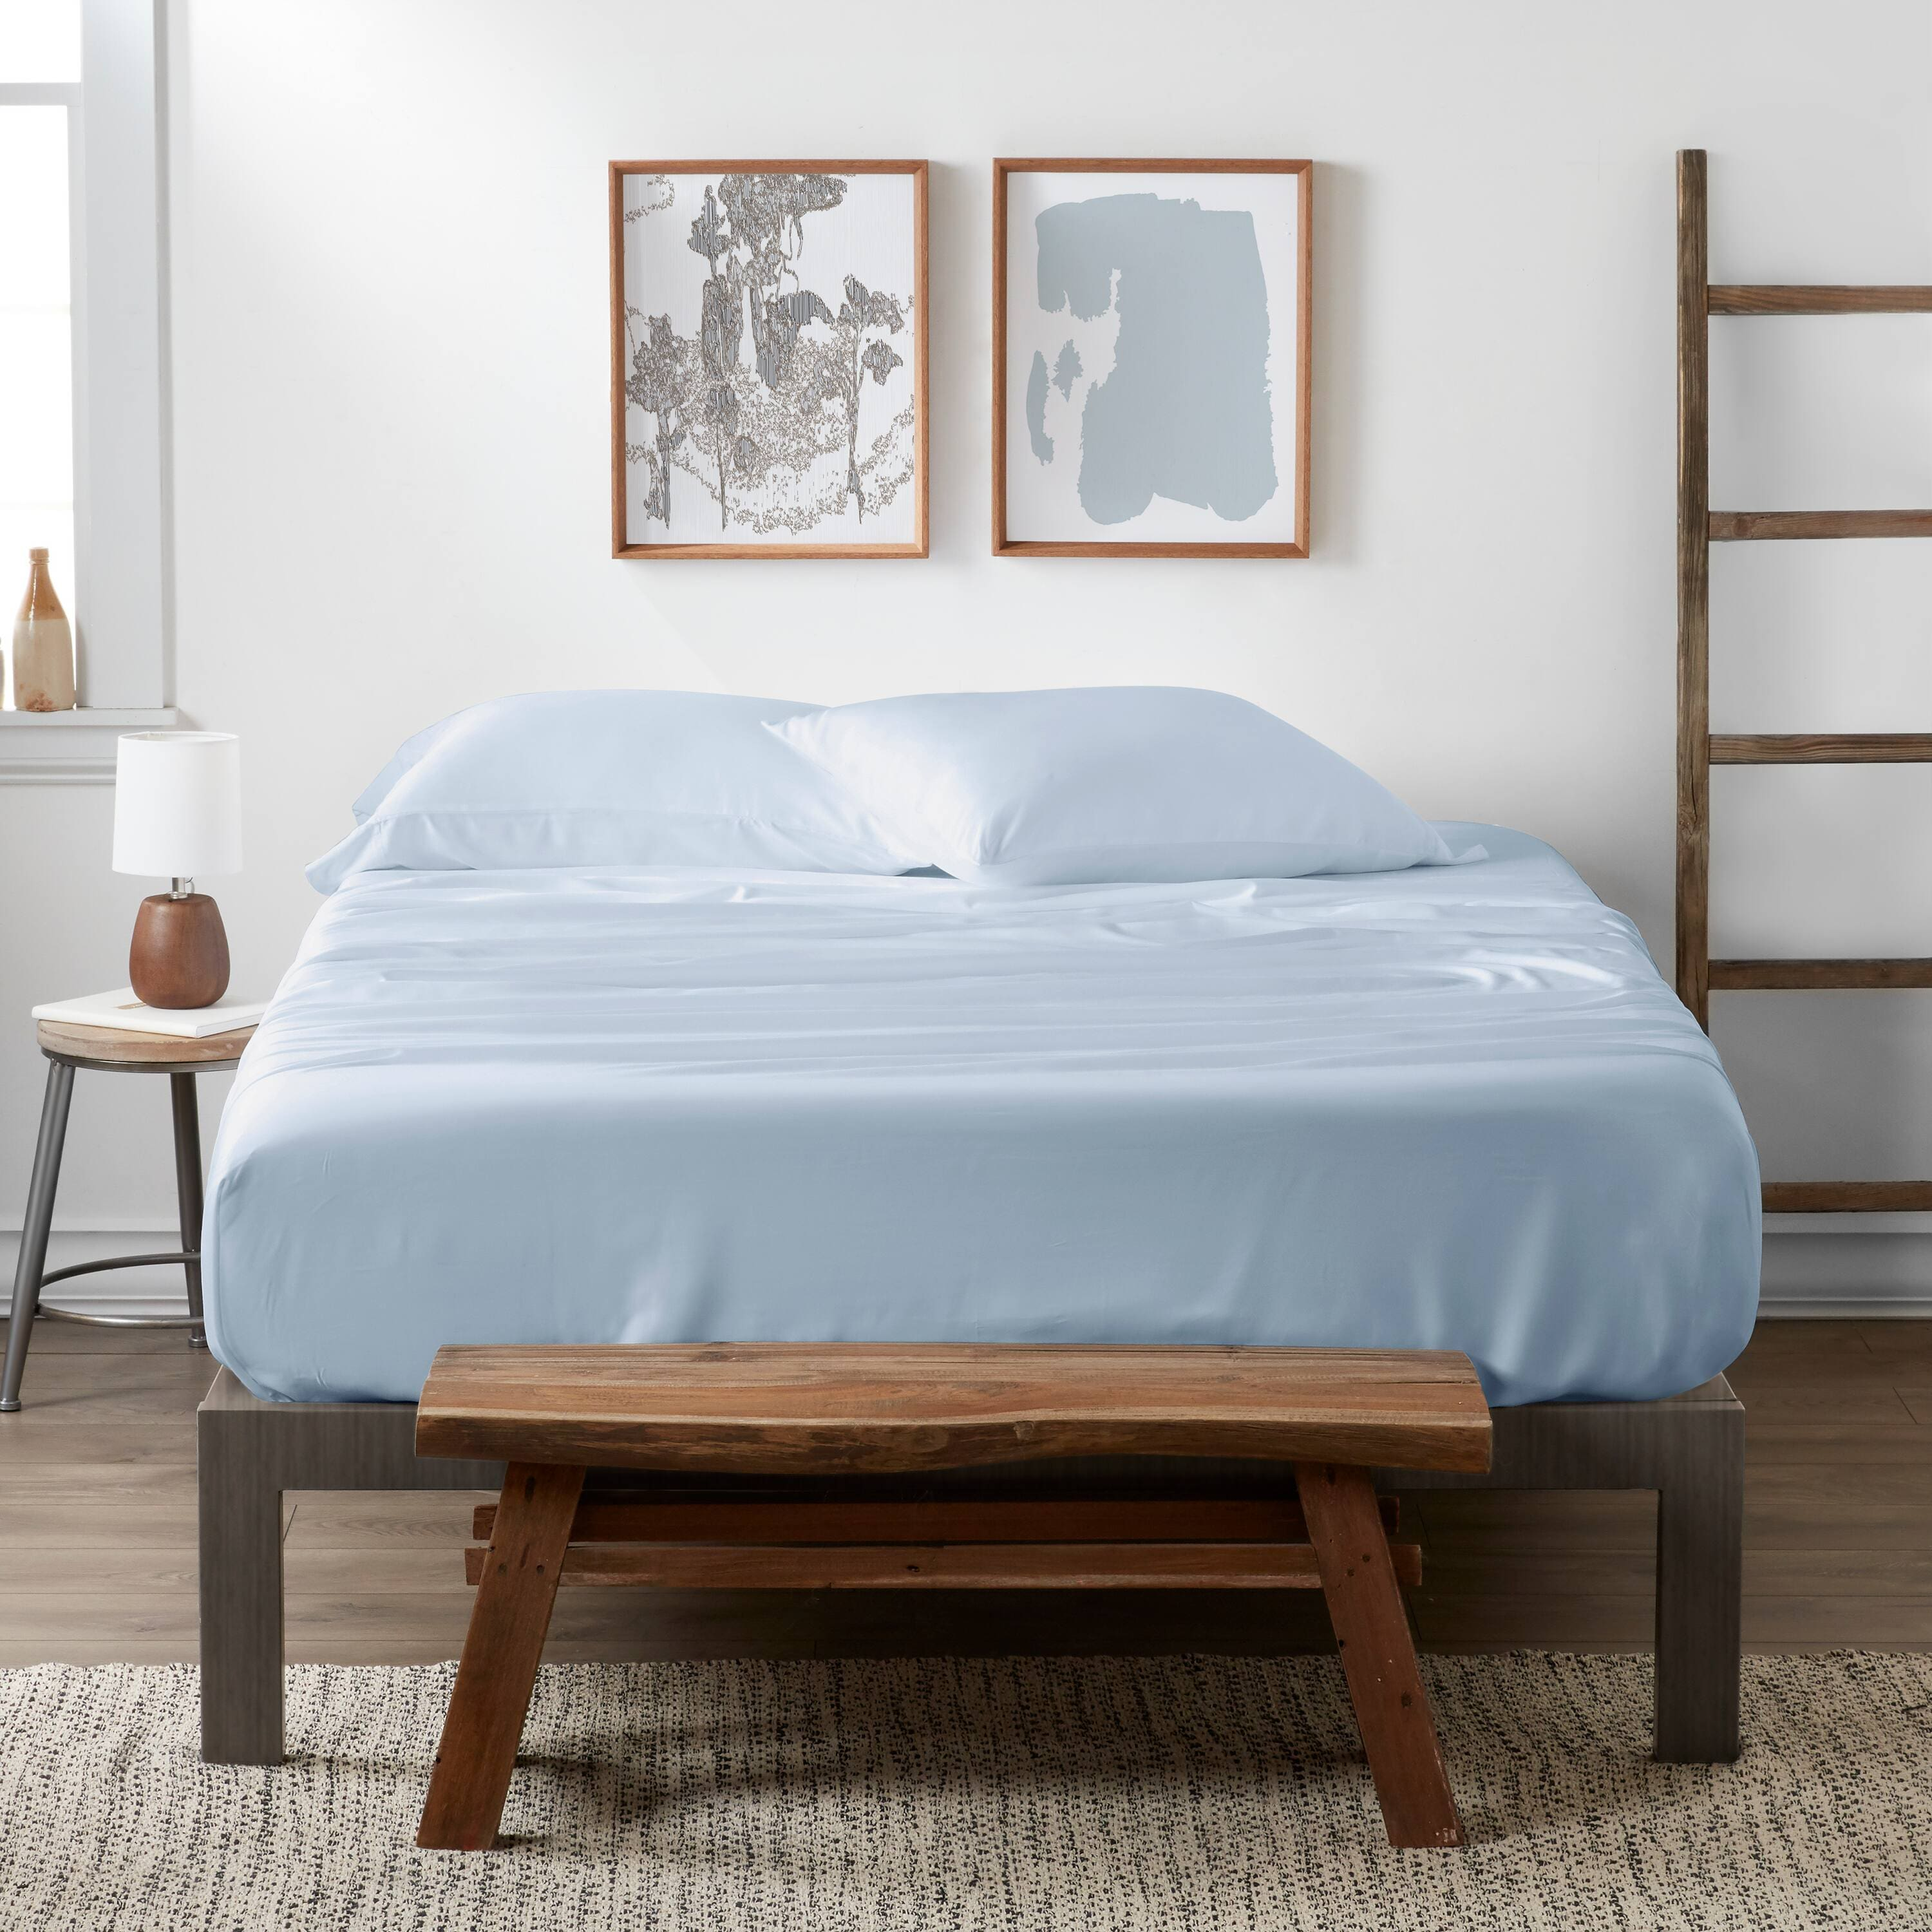 Linens & Hutch Luxury Bamboo 4-Piece Solid Sheet Set: Starting from $52.15 + Free Shipping!